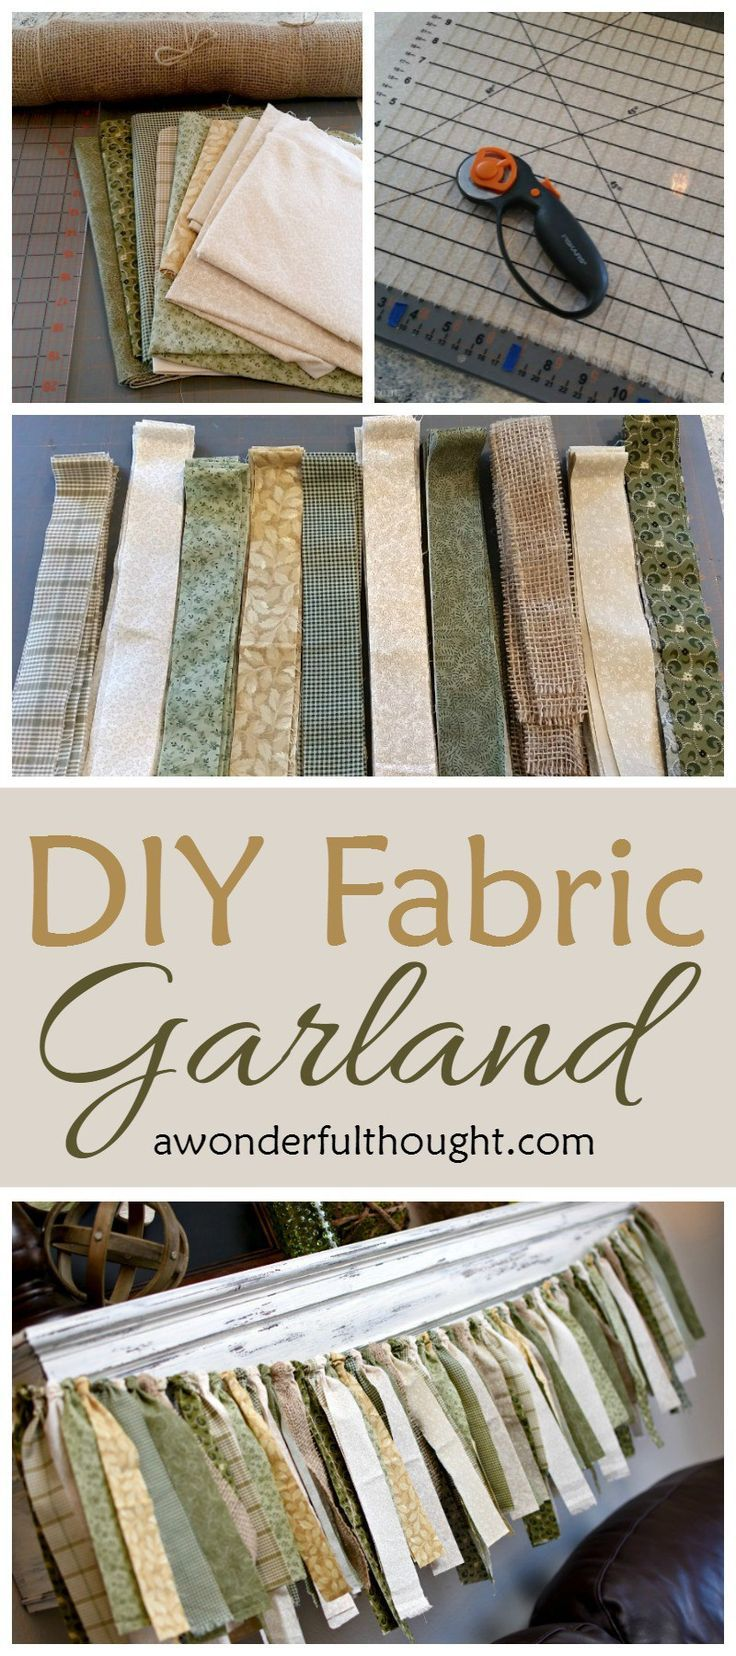 DIY Fabric Garland | awonderfulthought.com